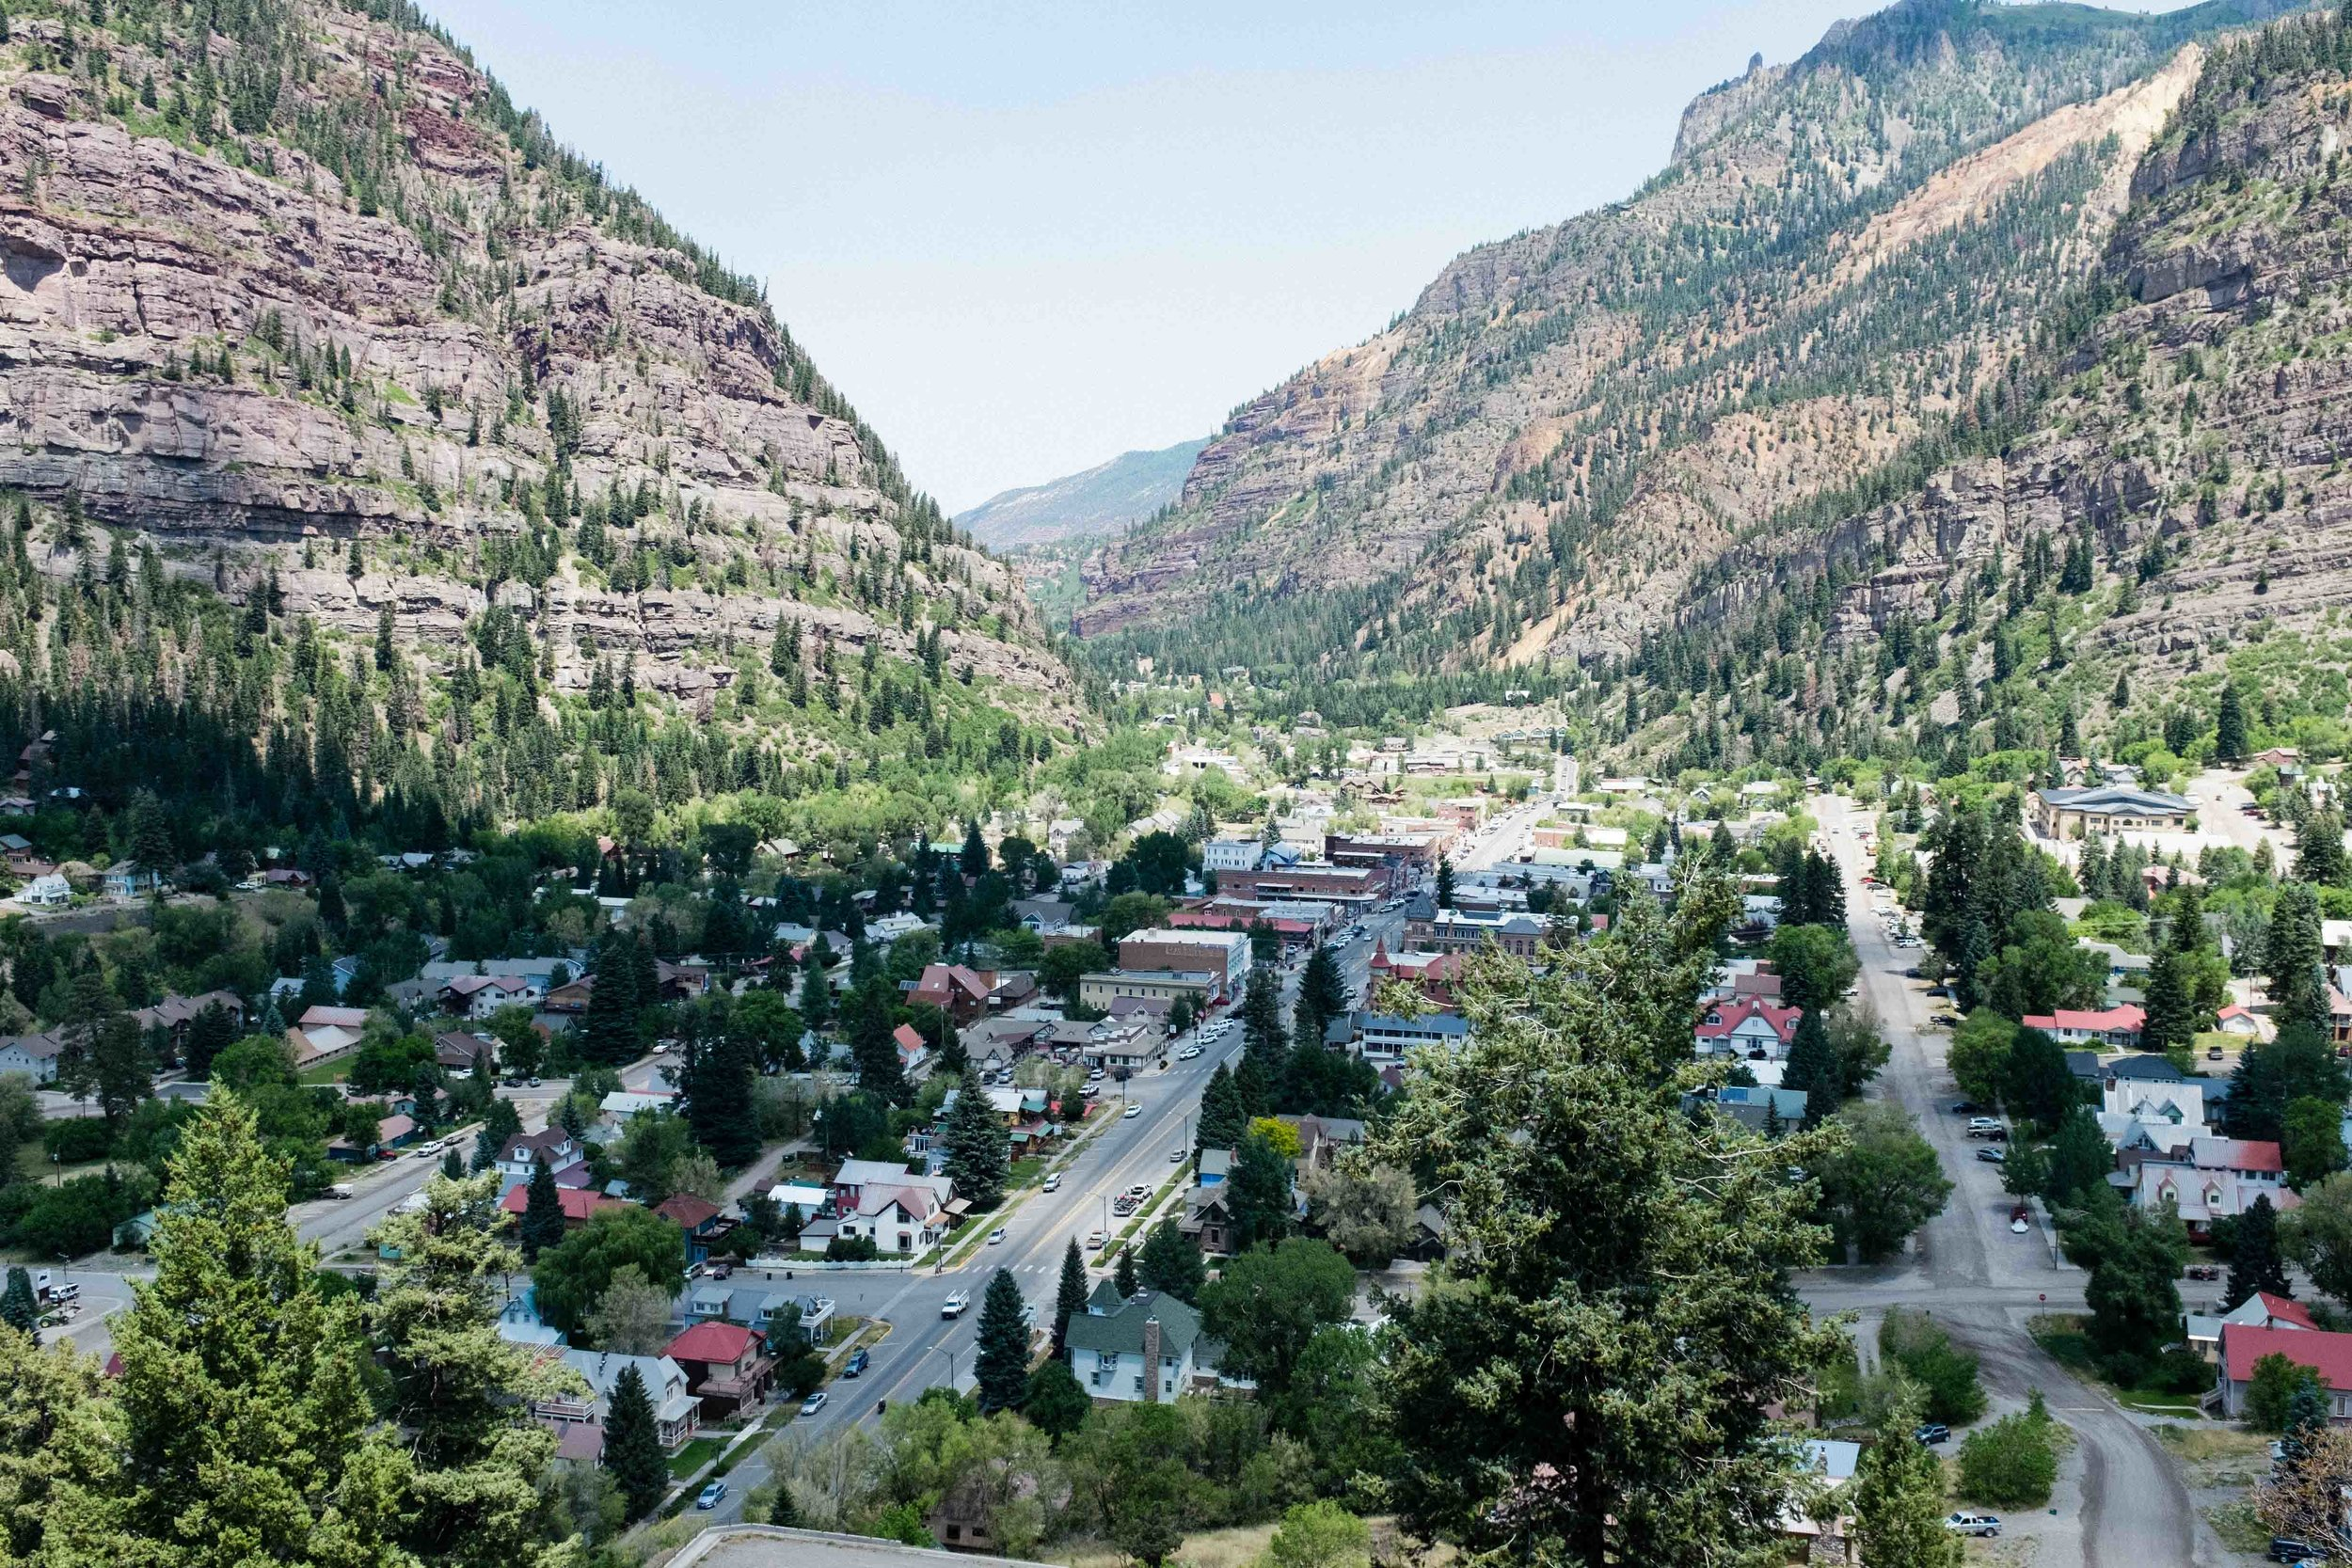 Ouray: Gateway to the Million Dollar Highway. Here we began climbing up Red Mountain Pass, 13 miles, 4,500' of elevation gain and a summit over 11,000 ft. There was an equal sense of awe over the beauty surrounding us, and the daunting physical task that lay ahead.